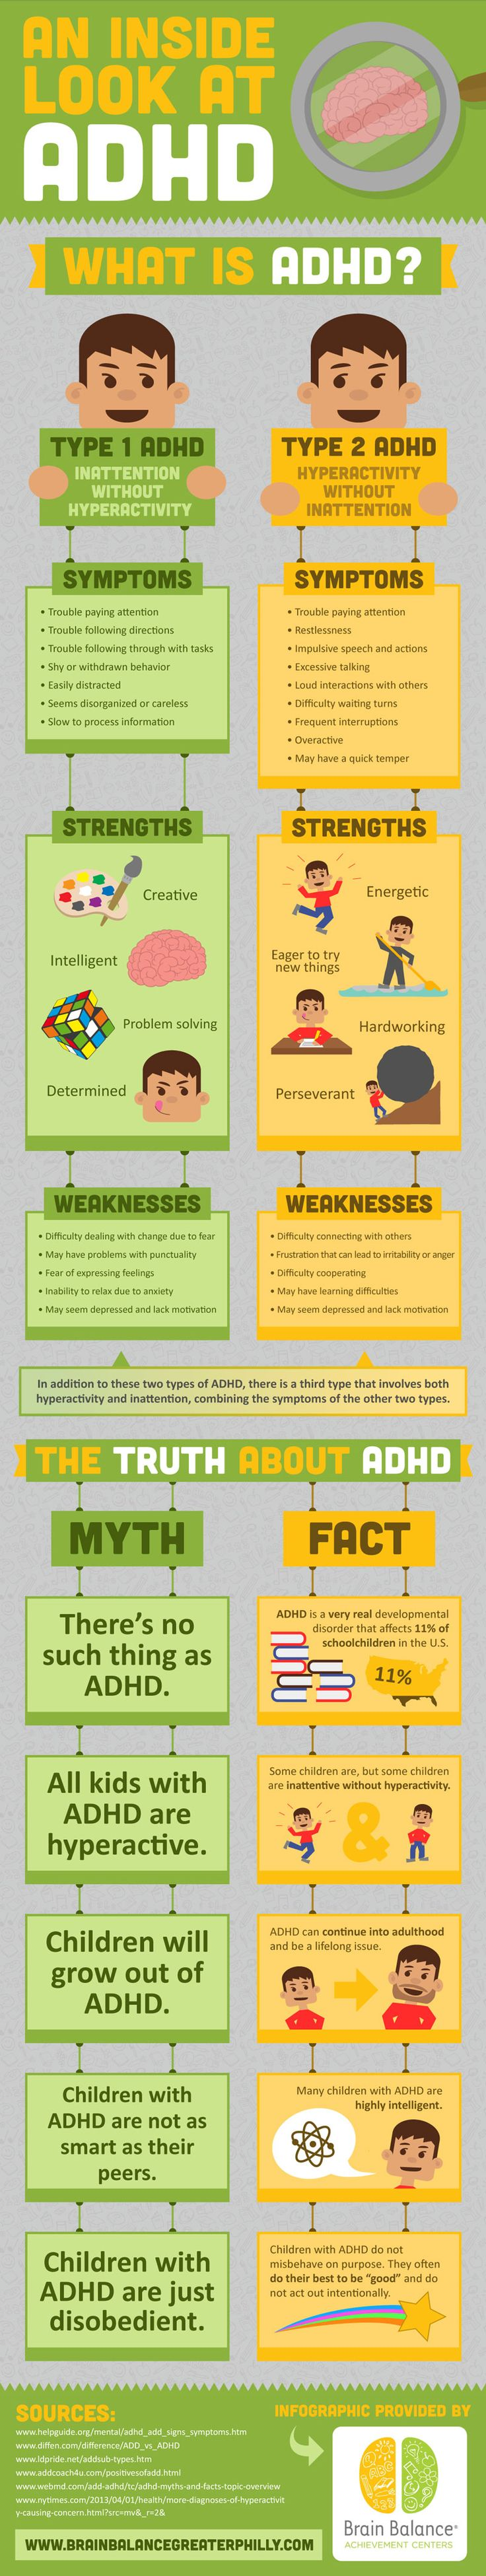 best ideas about adhd symptoms in children here is some information in detail and short for people who dont understand i have 2 of my 4 children who have been diagnosed adhd by extended